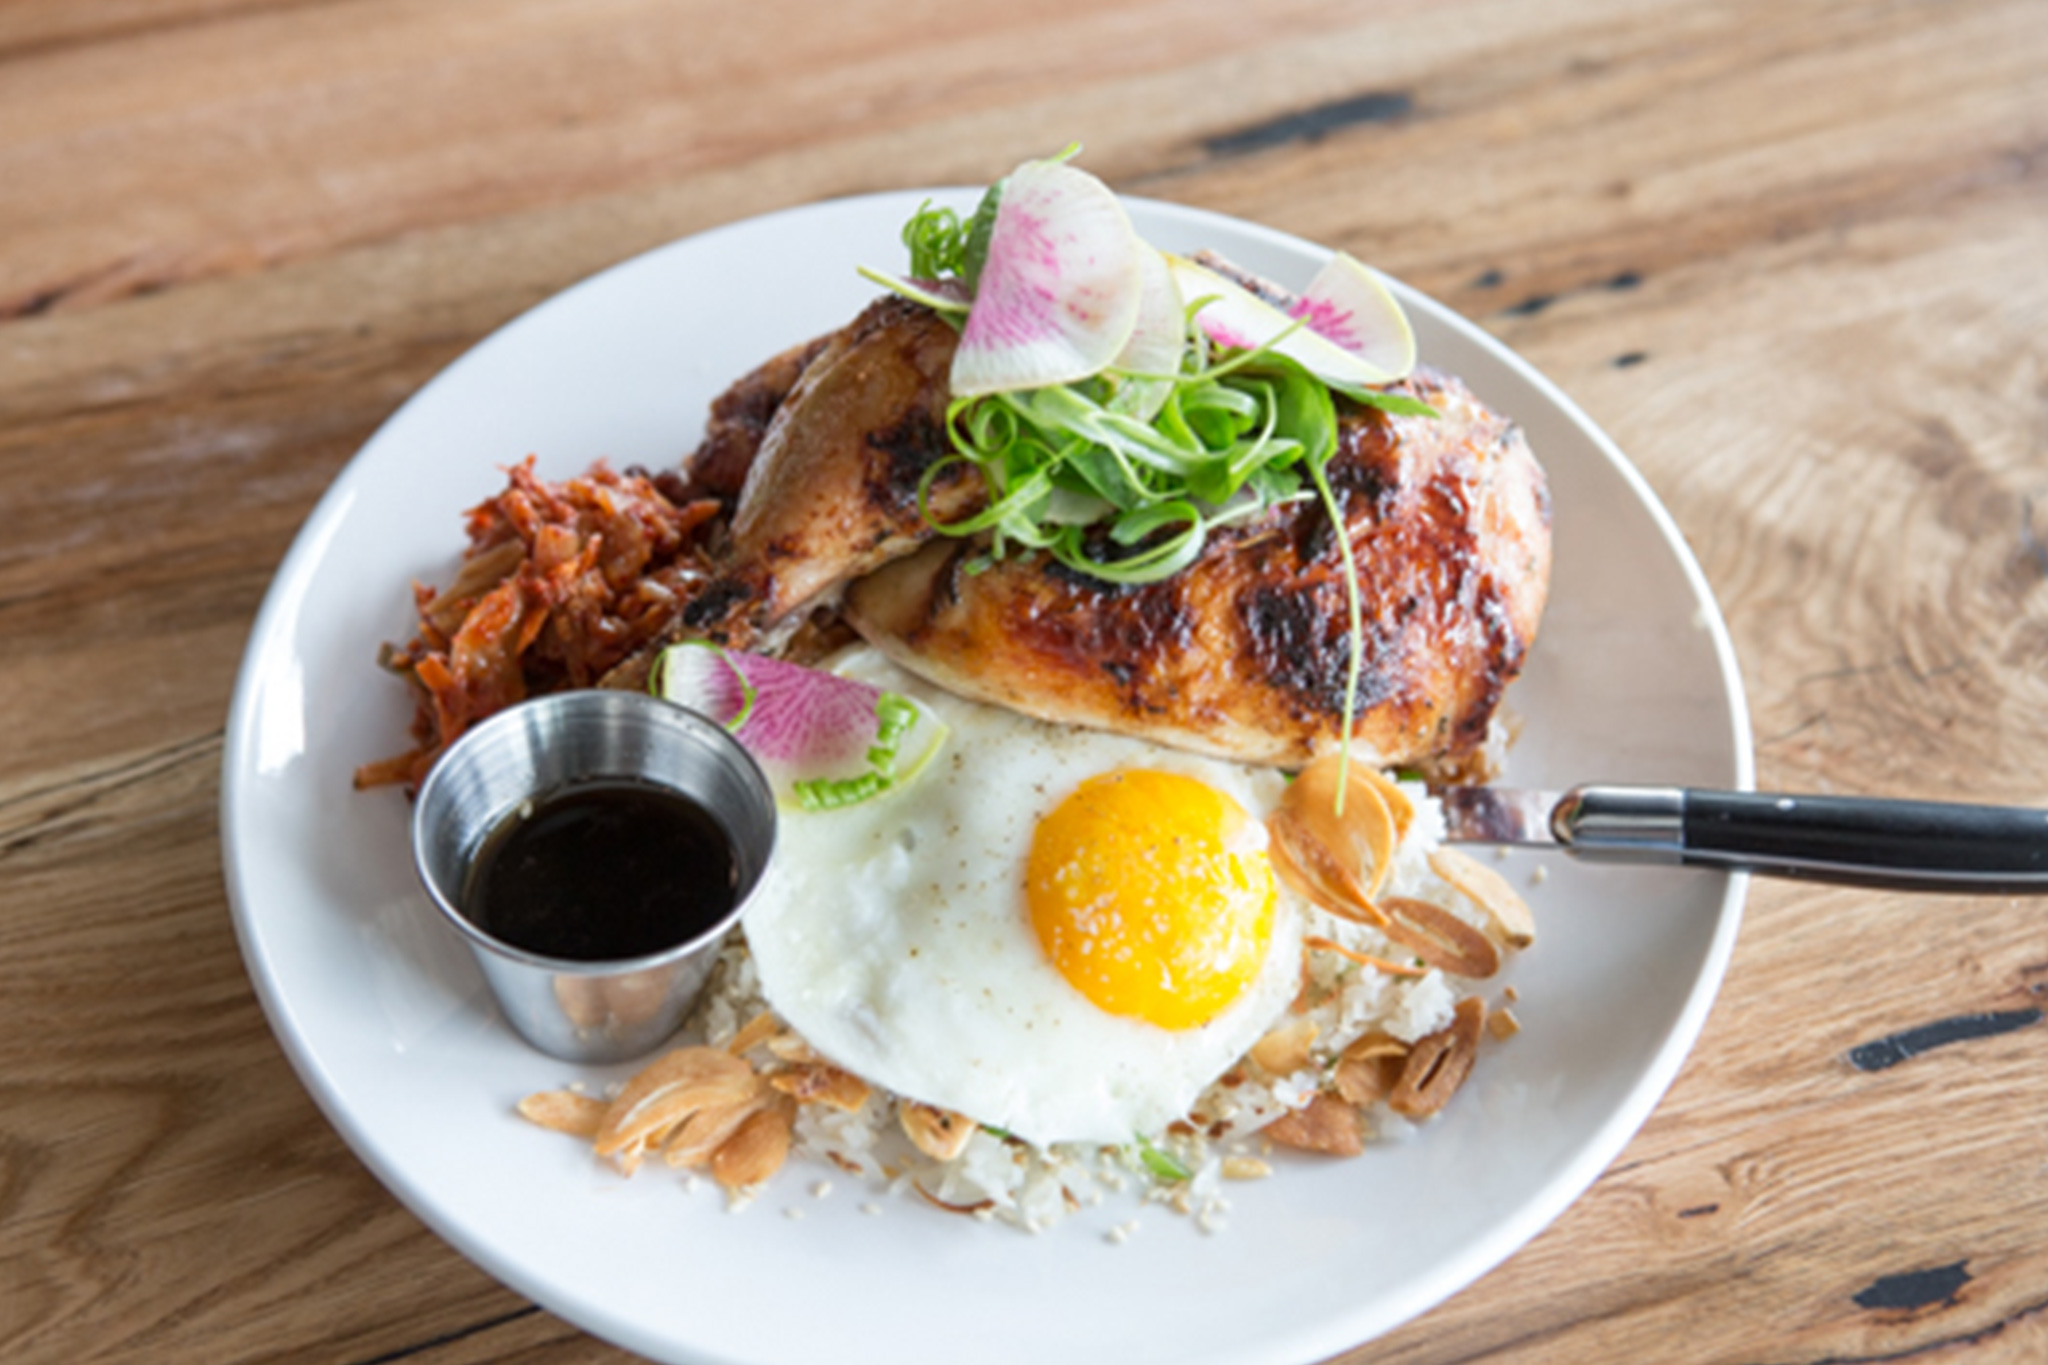 Brider Kitchen: Slow rotisserie cooking, meet fast-casual